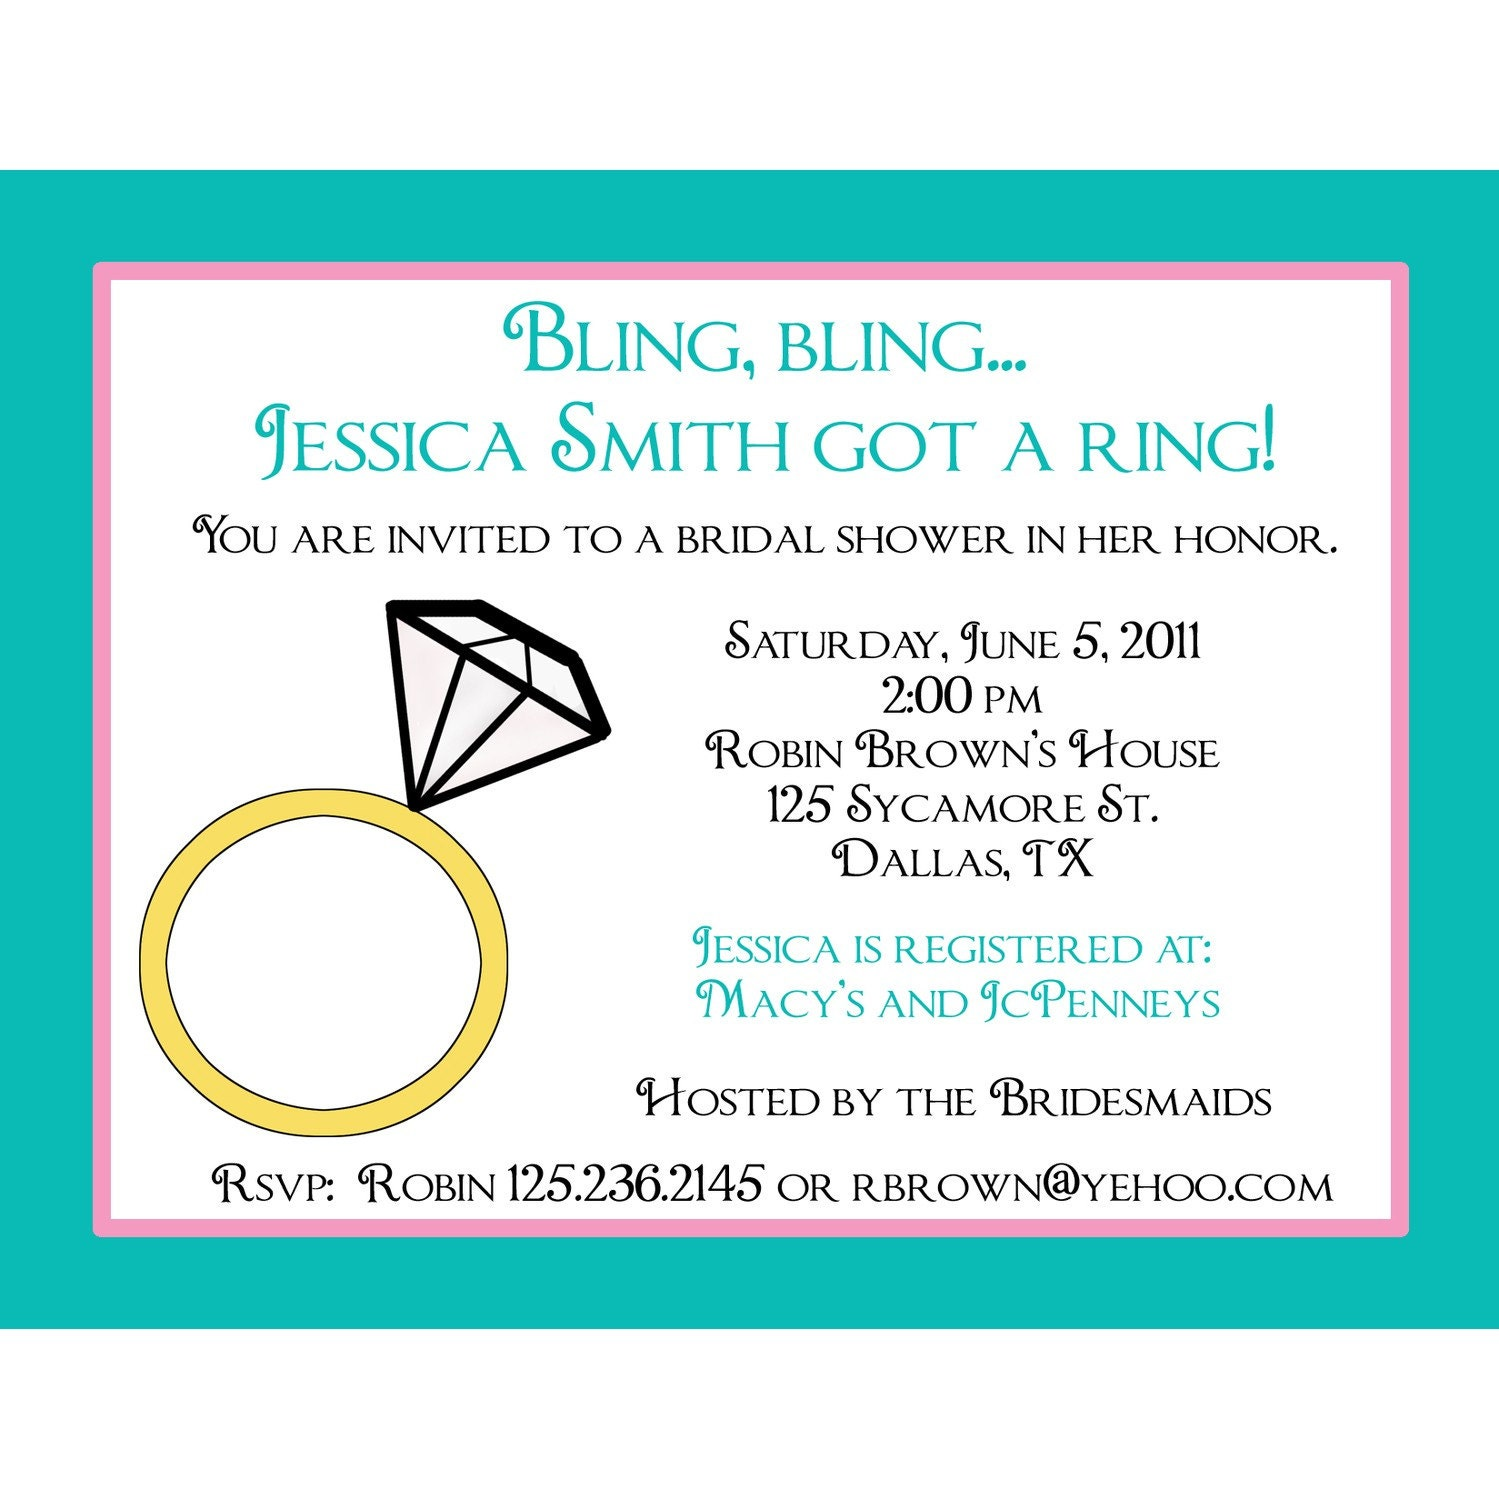 personal bridal shower invitations wording - 28 images - wedding ...